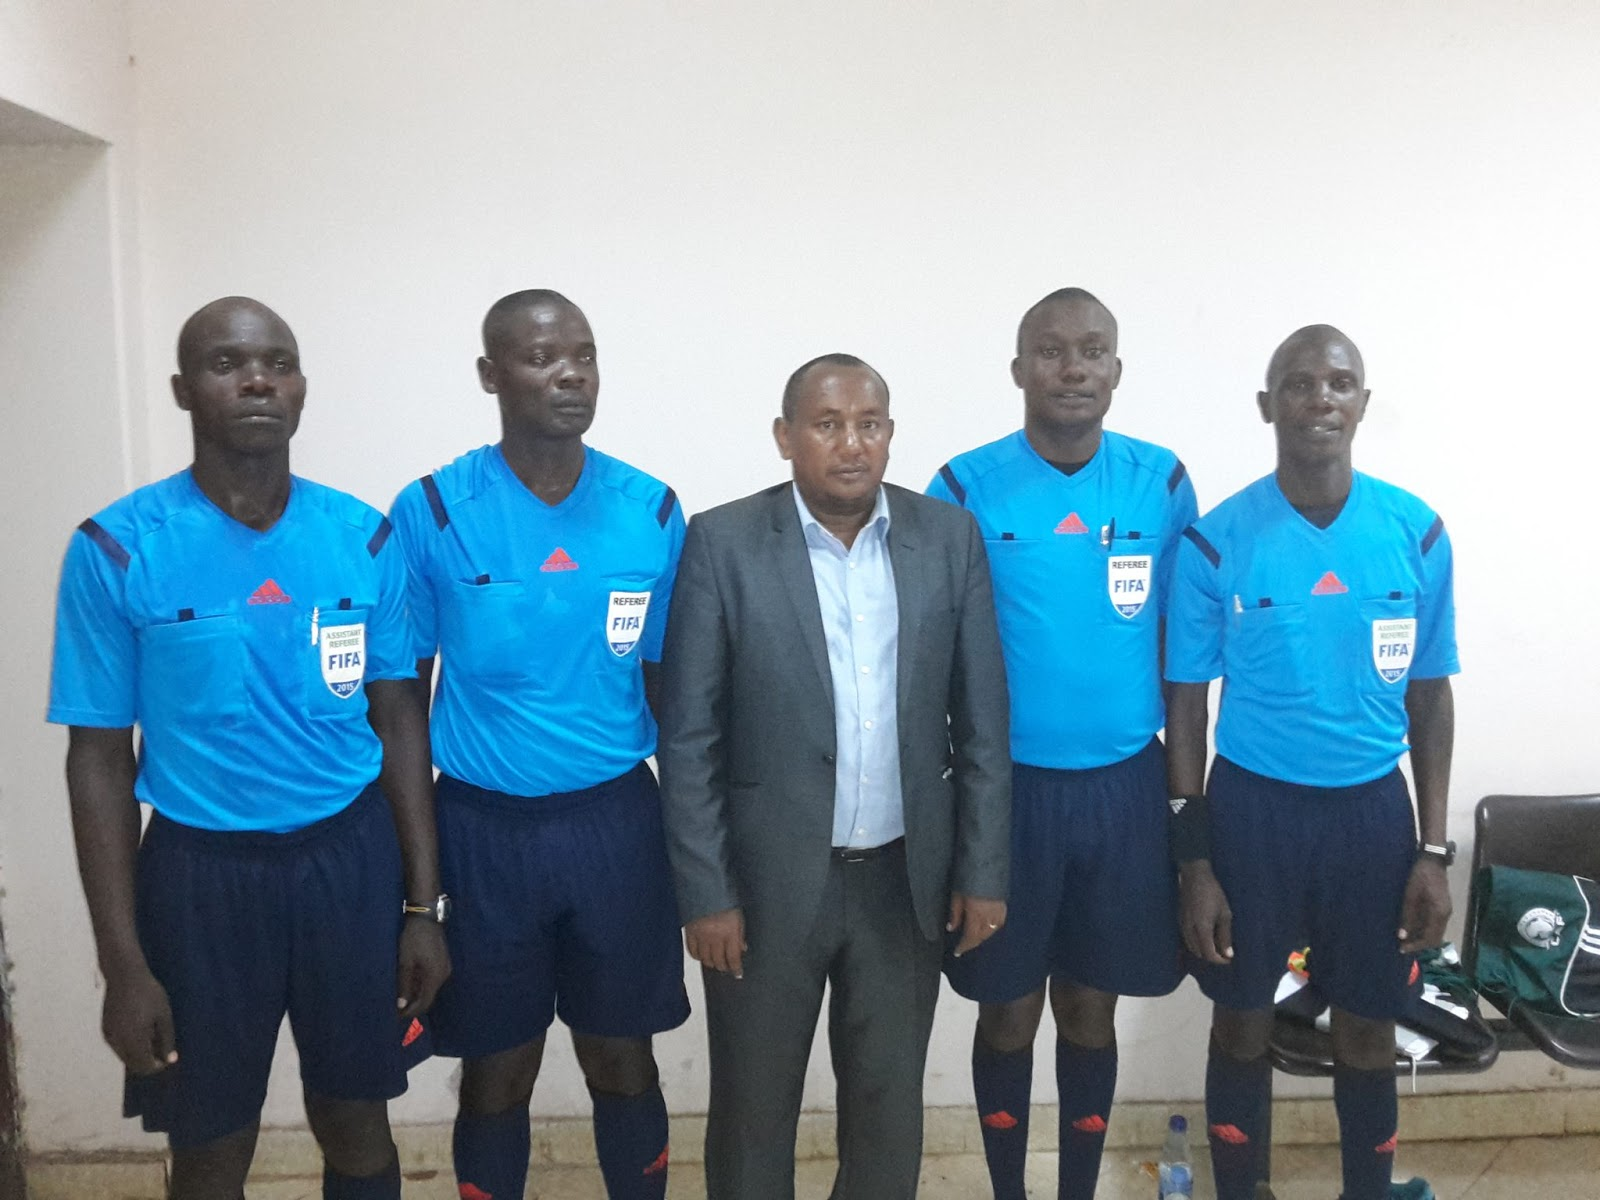 Nsubuga (second right) will be the center referee for the Super Cup on Saturday (file photo)